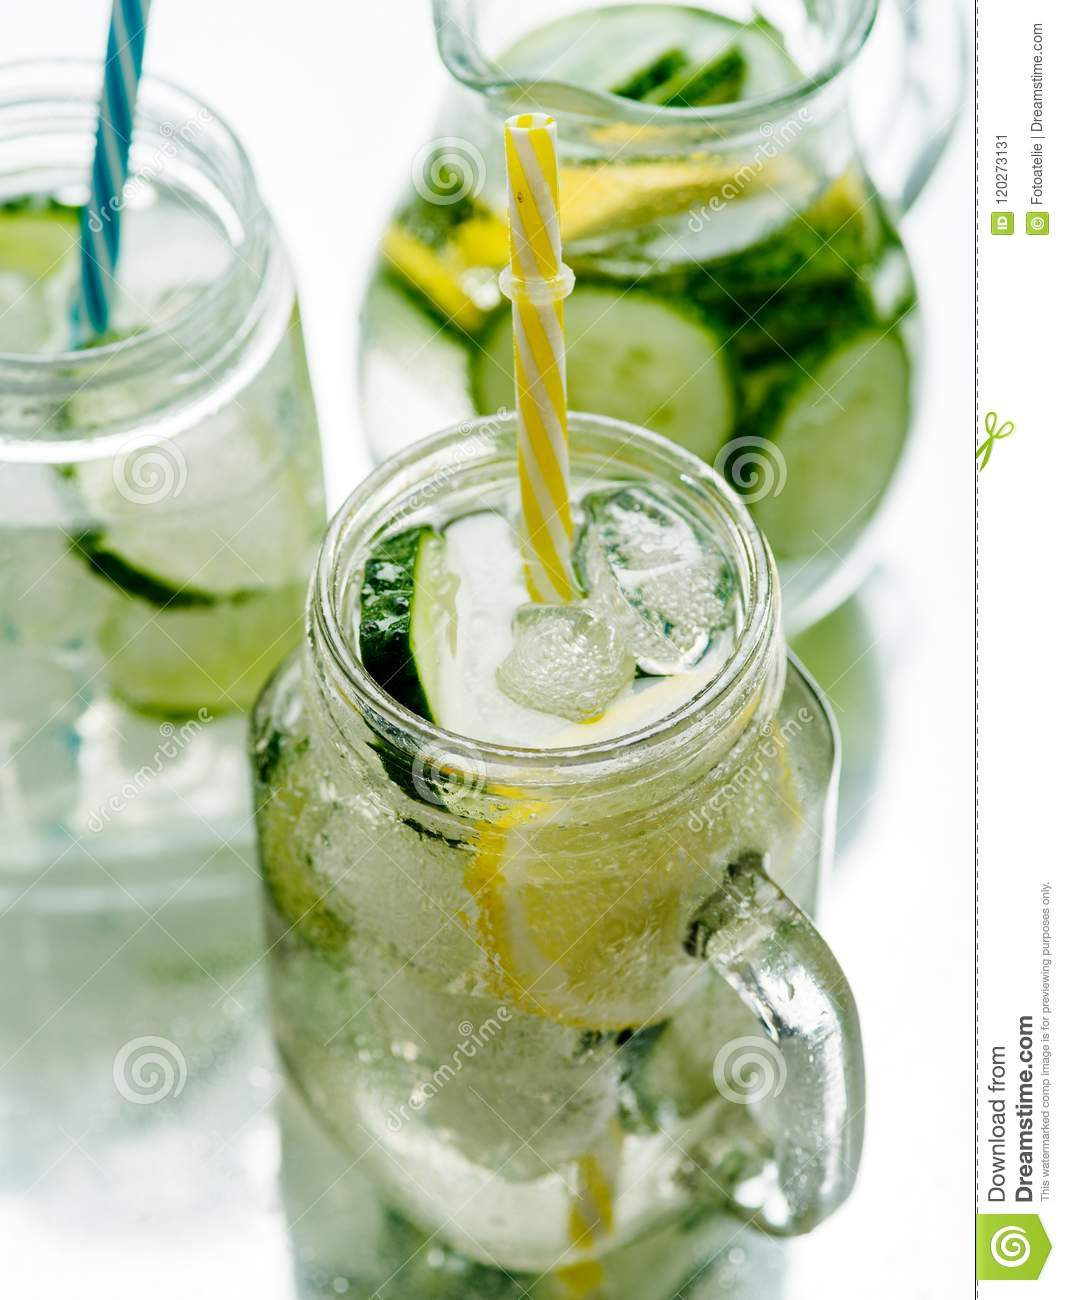 Fresh Summer Drink. Healthy detox fizzy water with lemon and cucumber in mason jar. Healthy food concept.